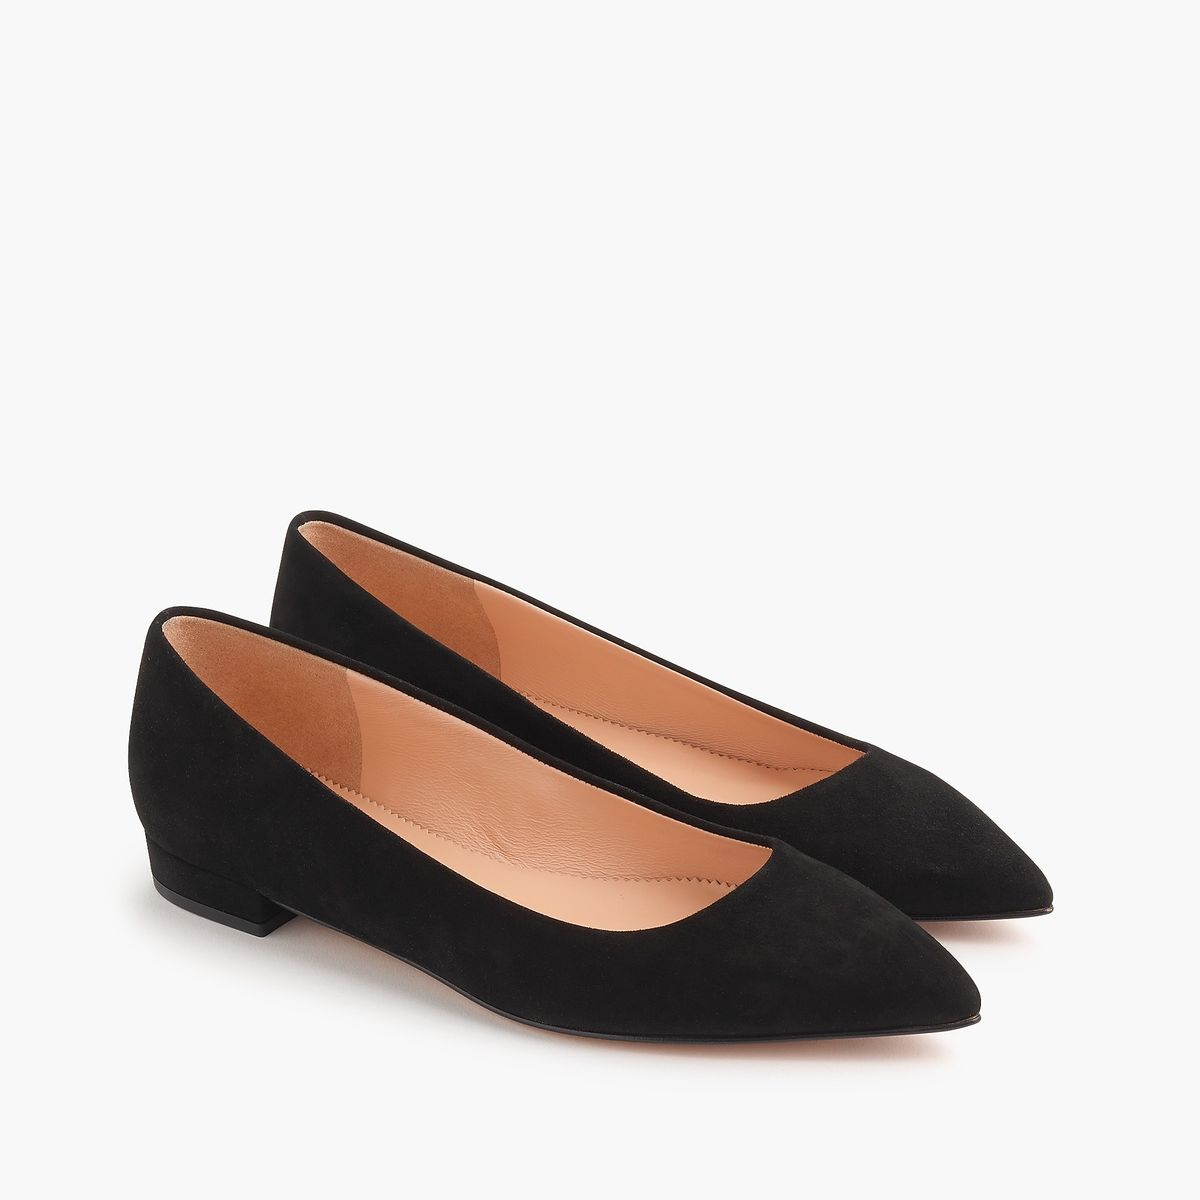 Shop J.Crew for the Pointed-toe flats in suede for Women. Find the best selection of Women Clothing available in-stores and online.